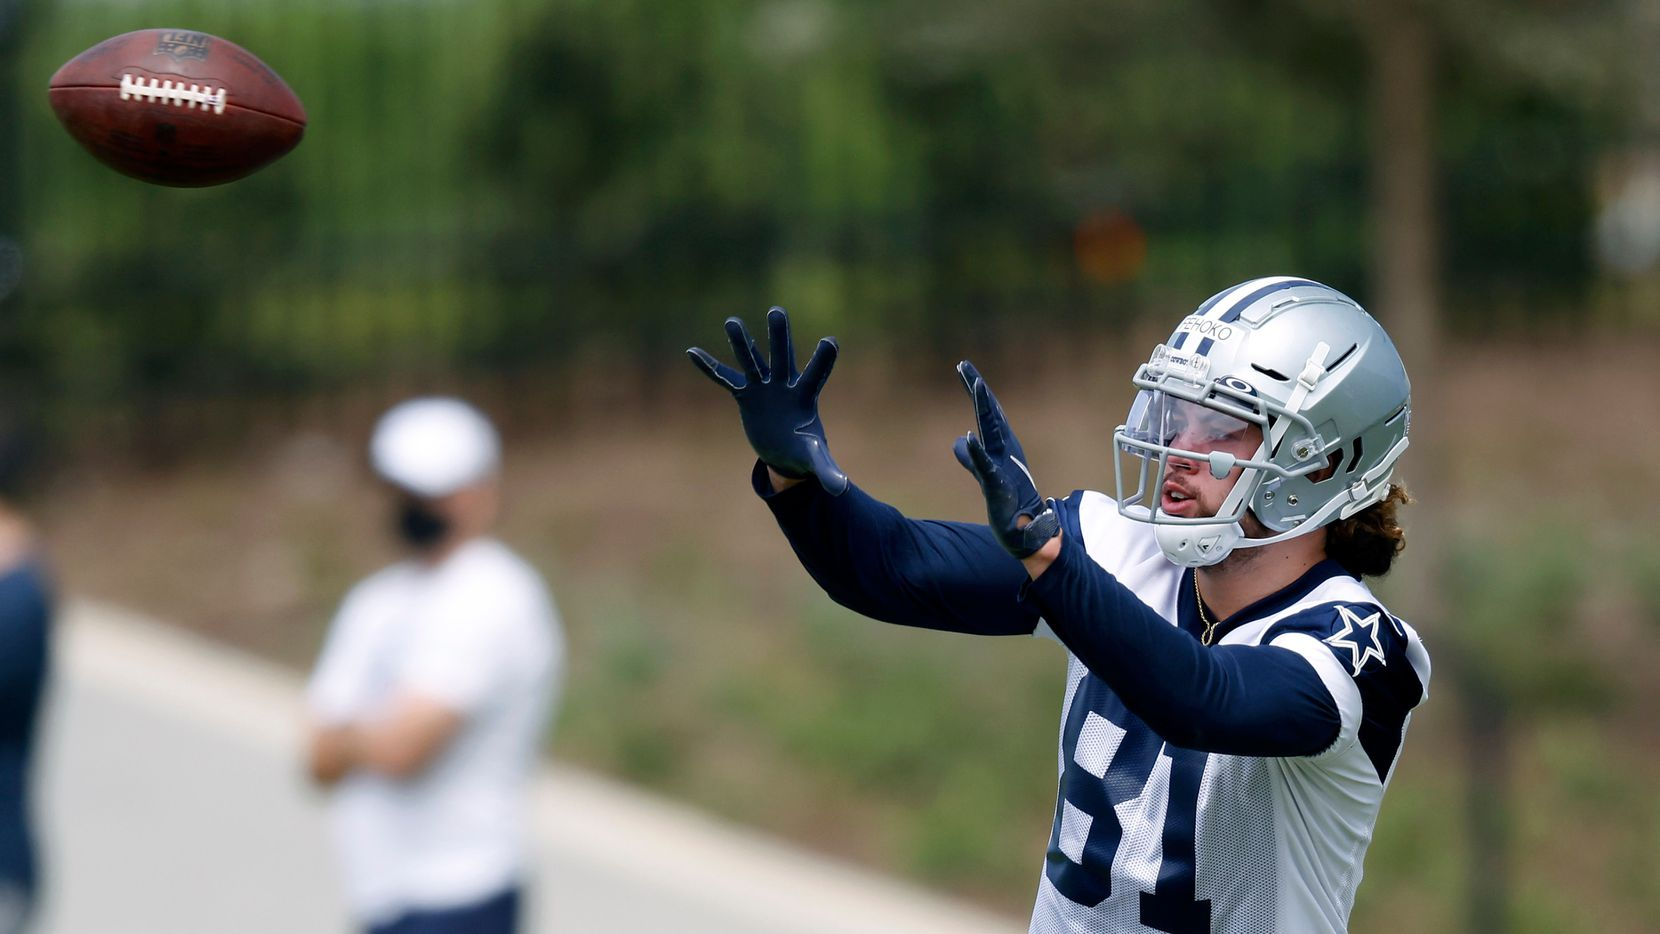 Dallas Cowboys rookie wide receiver Simi Fehoko (81) catches a ball during a rookie minicamp drill at the The Star in Frisco, Texas, Friday, May 14, 2021.